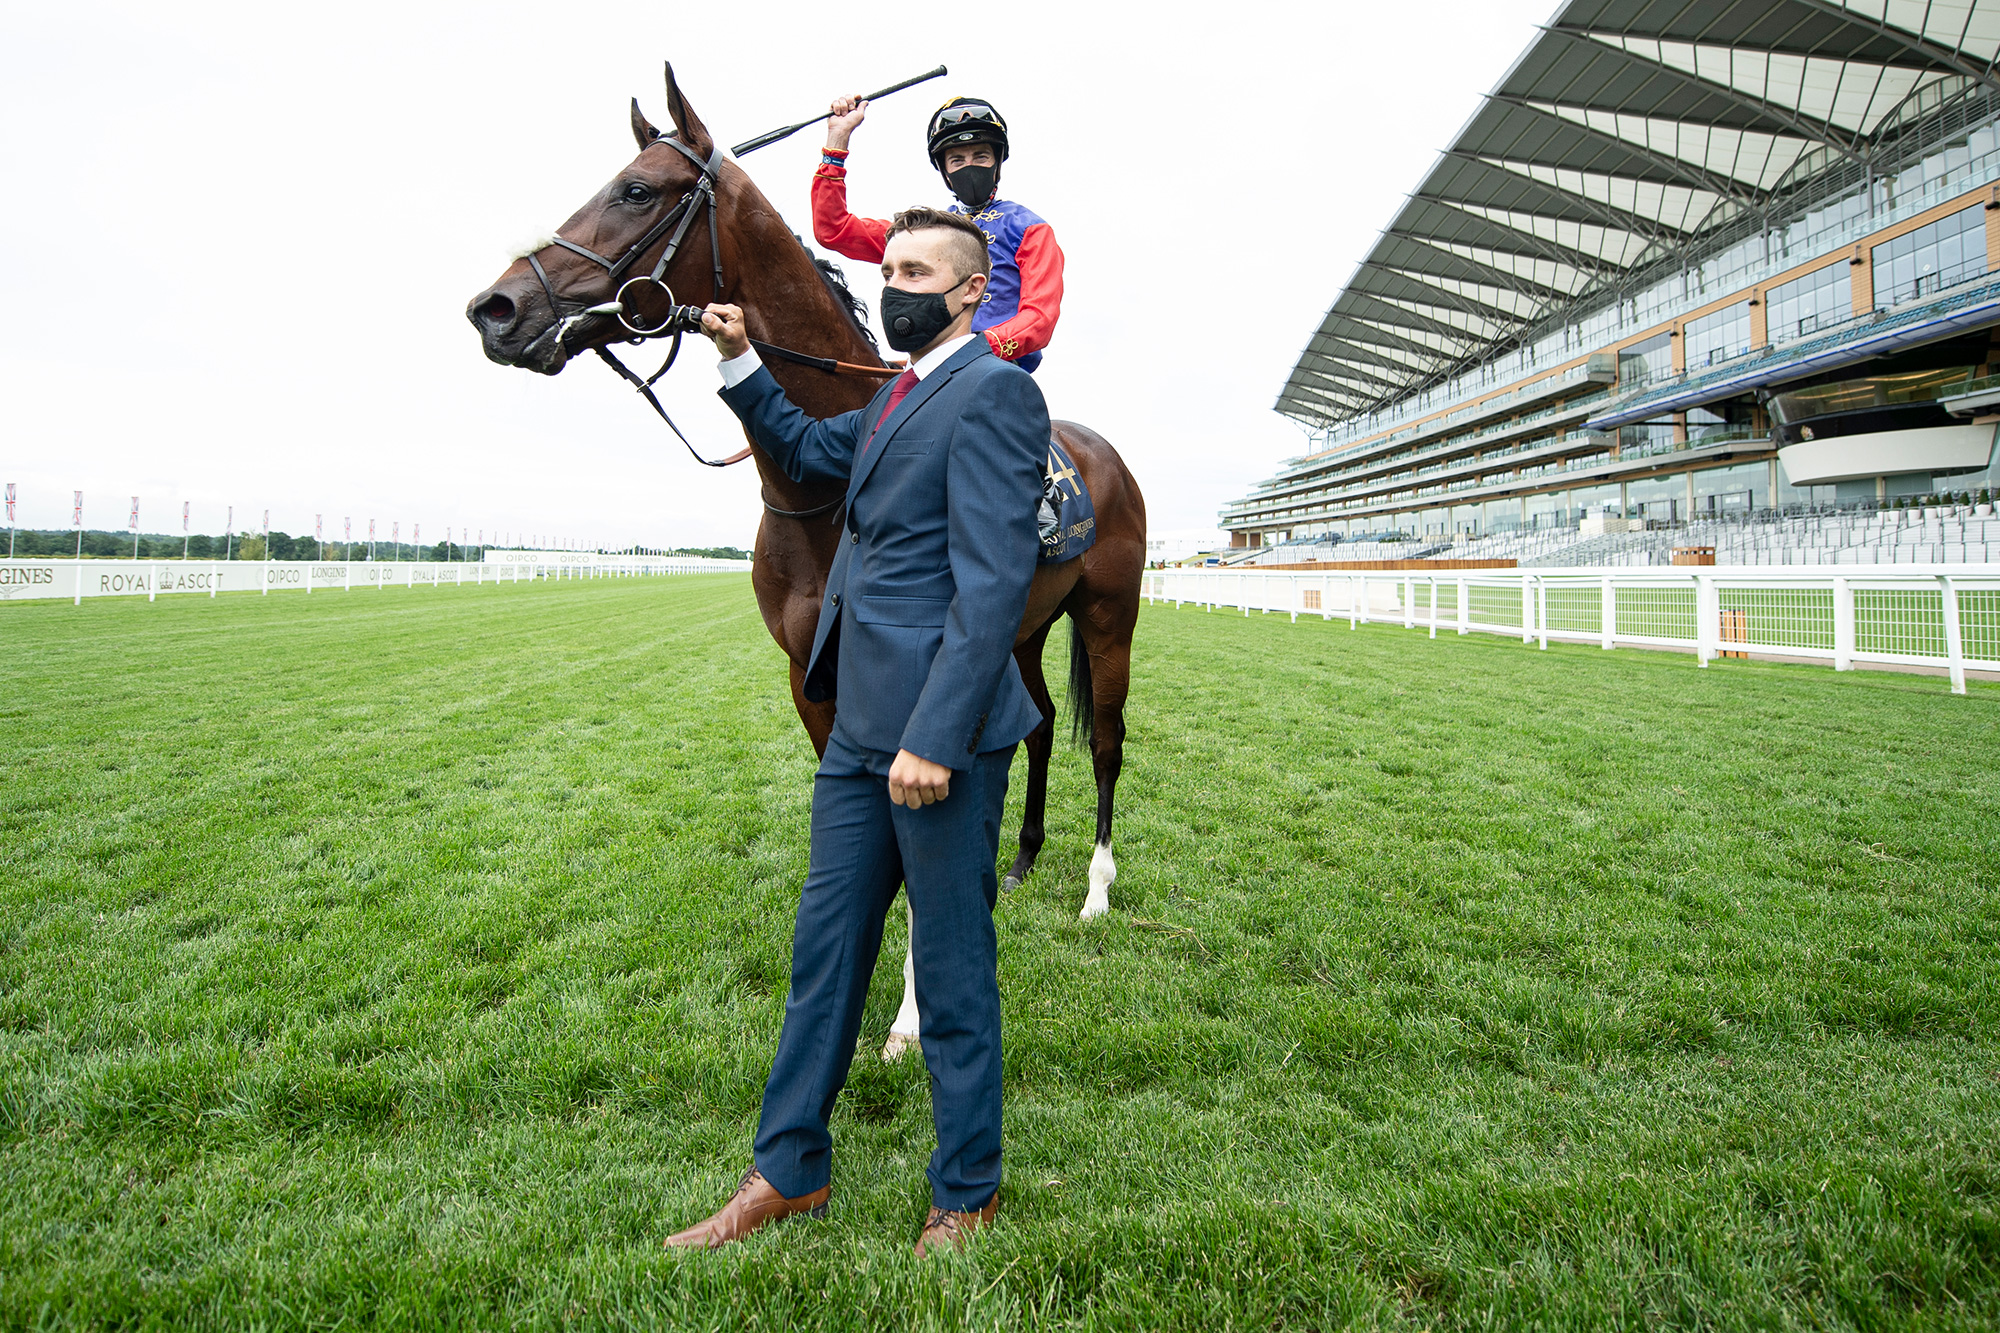 Jockey James Doyle celebrates after his victory on The Queens horse Tactical in The Windsor Castle Stakes and is held by his groom Nathan Cheshire during Day 2 of Royal Ascot